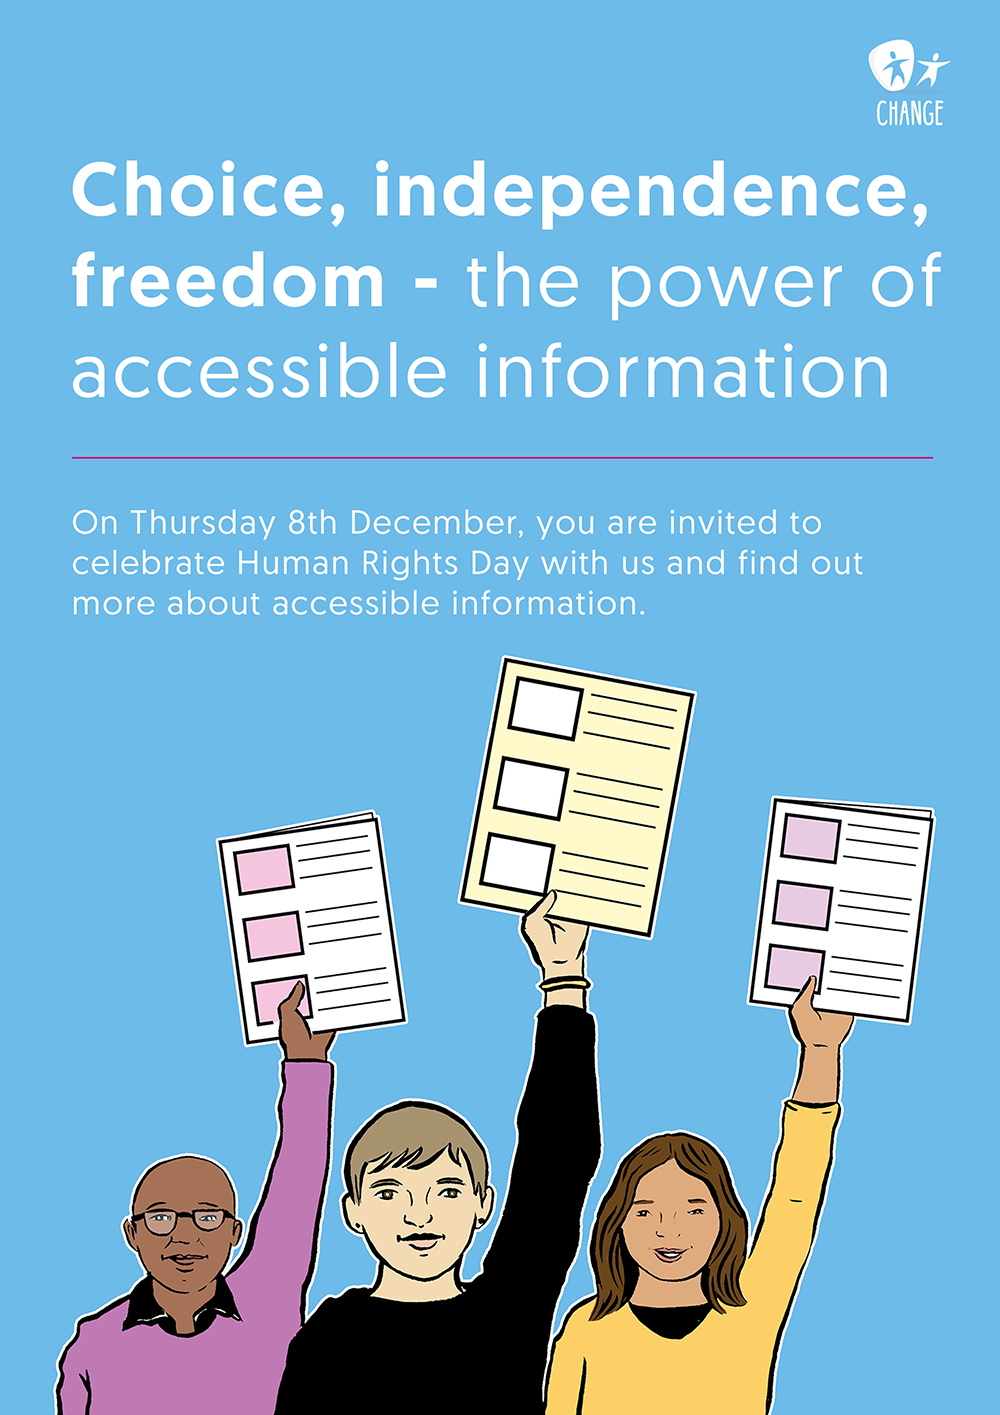 Choice, independence, freedom - the power of accessible information